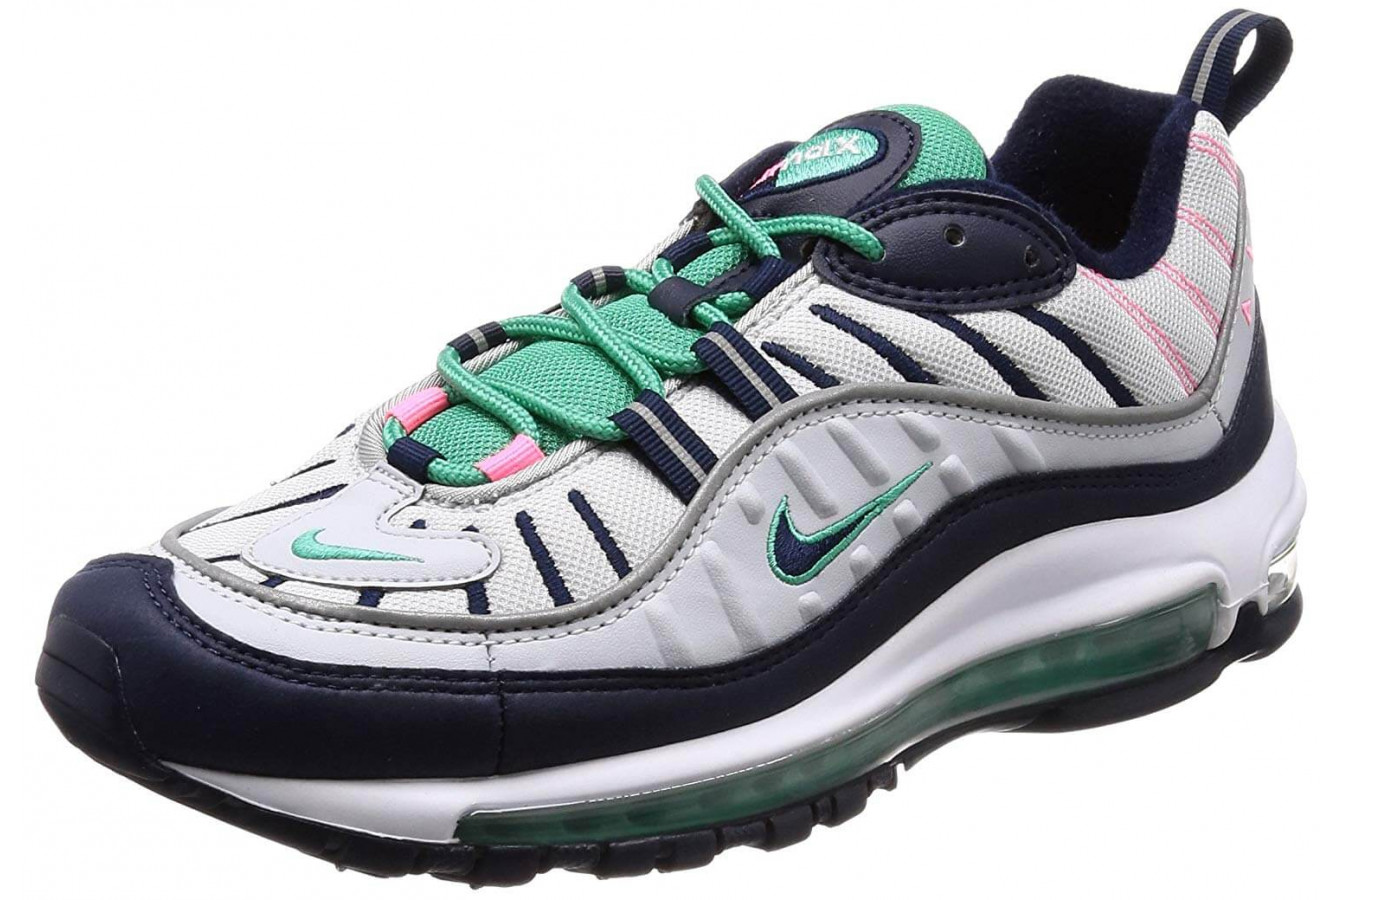 8fc350ad32 Nike Air Max 98 Reviewed - To Buy or Not in June 2019?